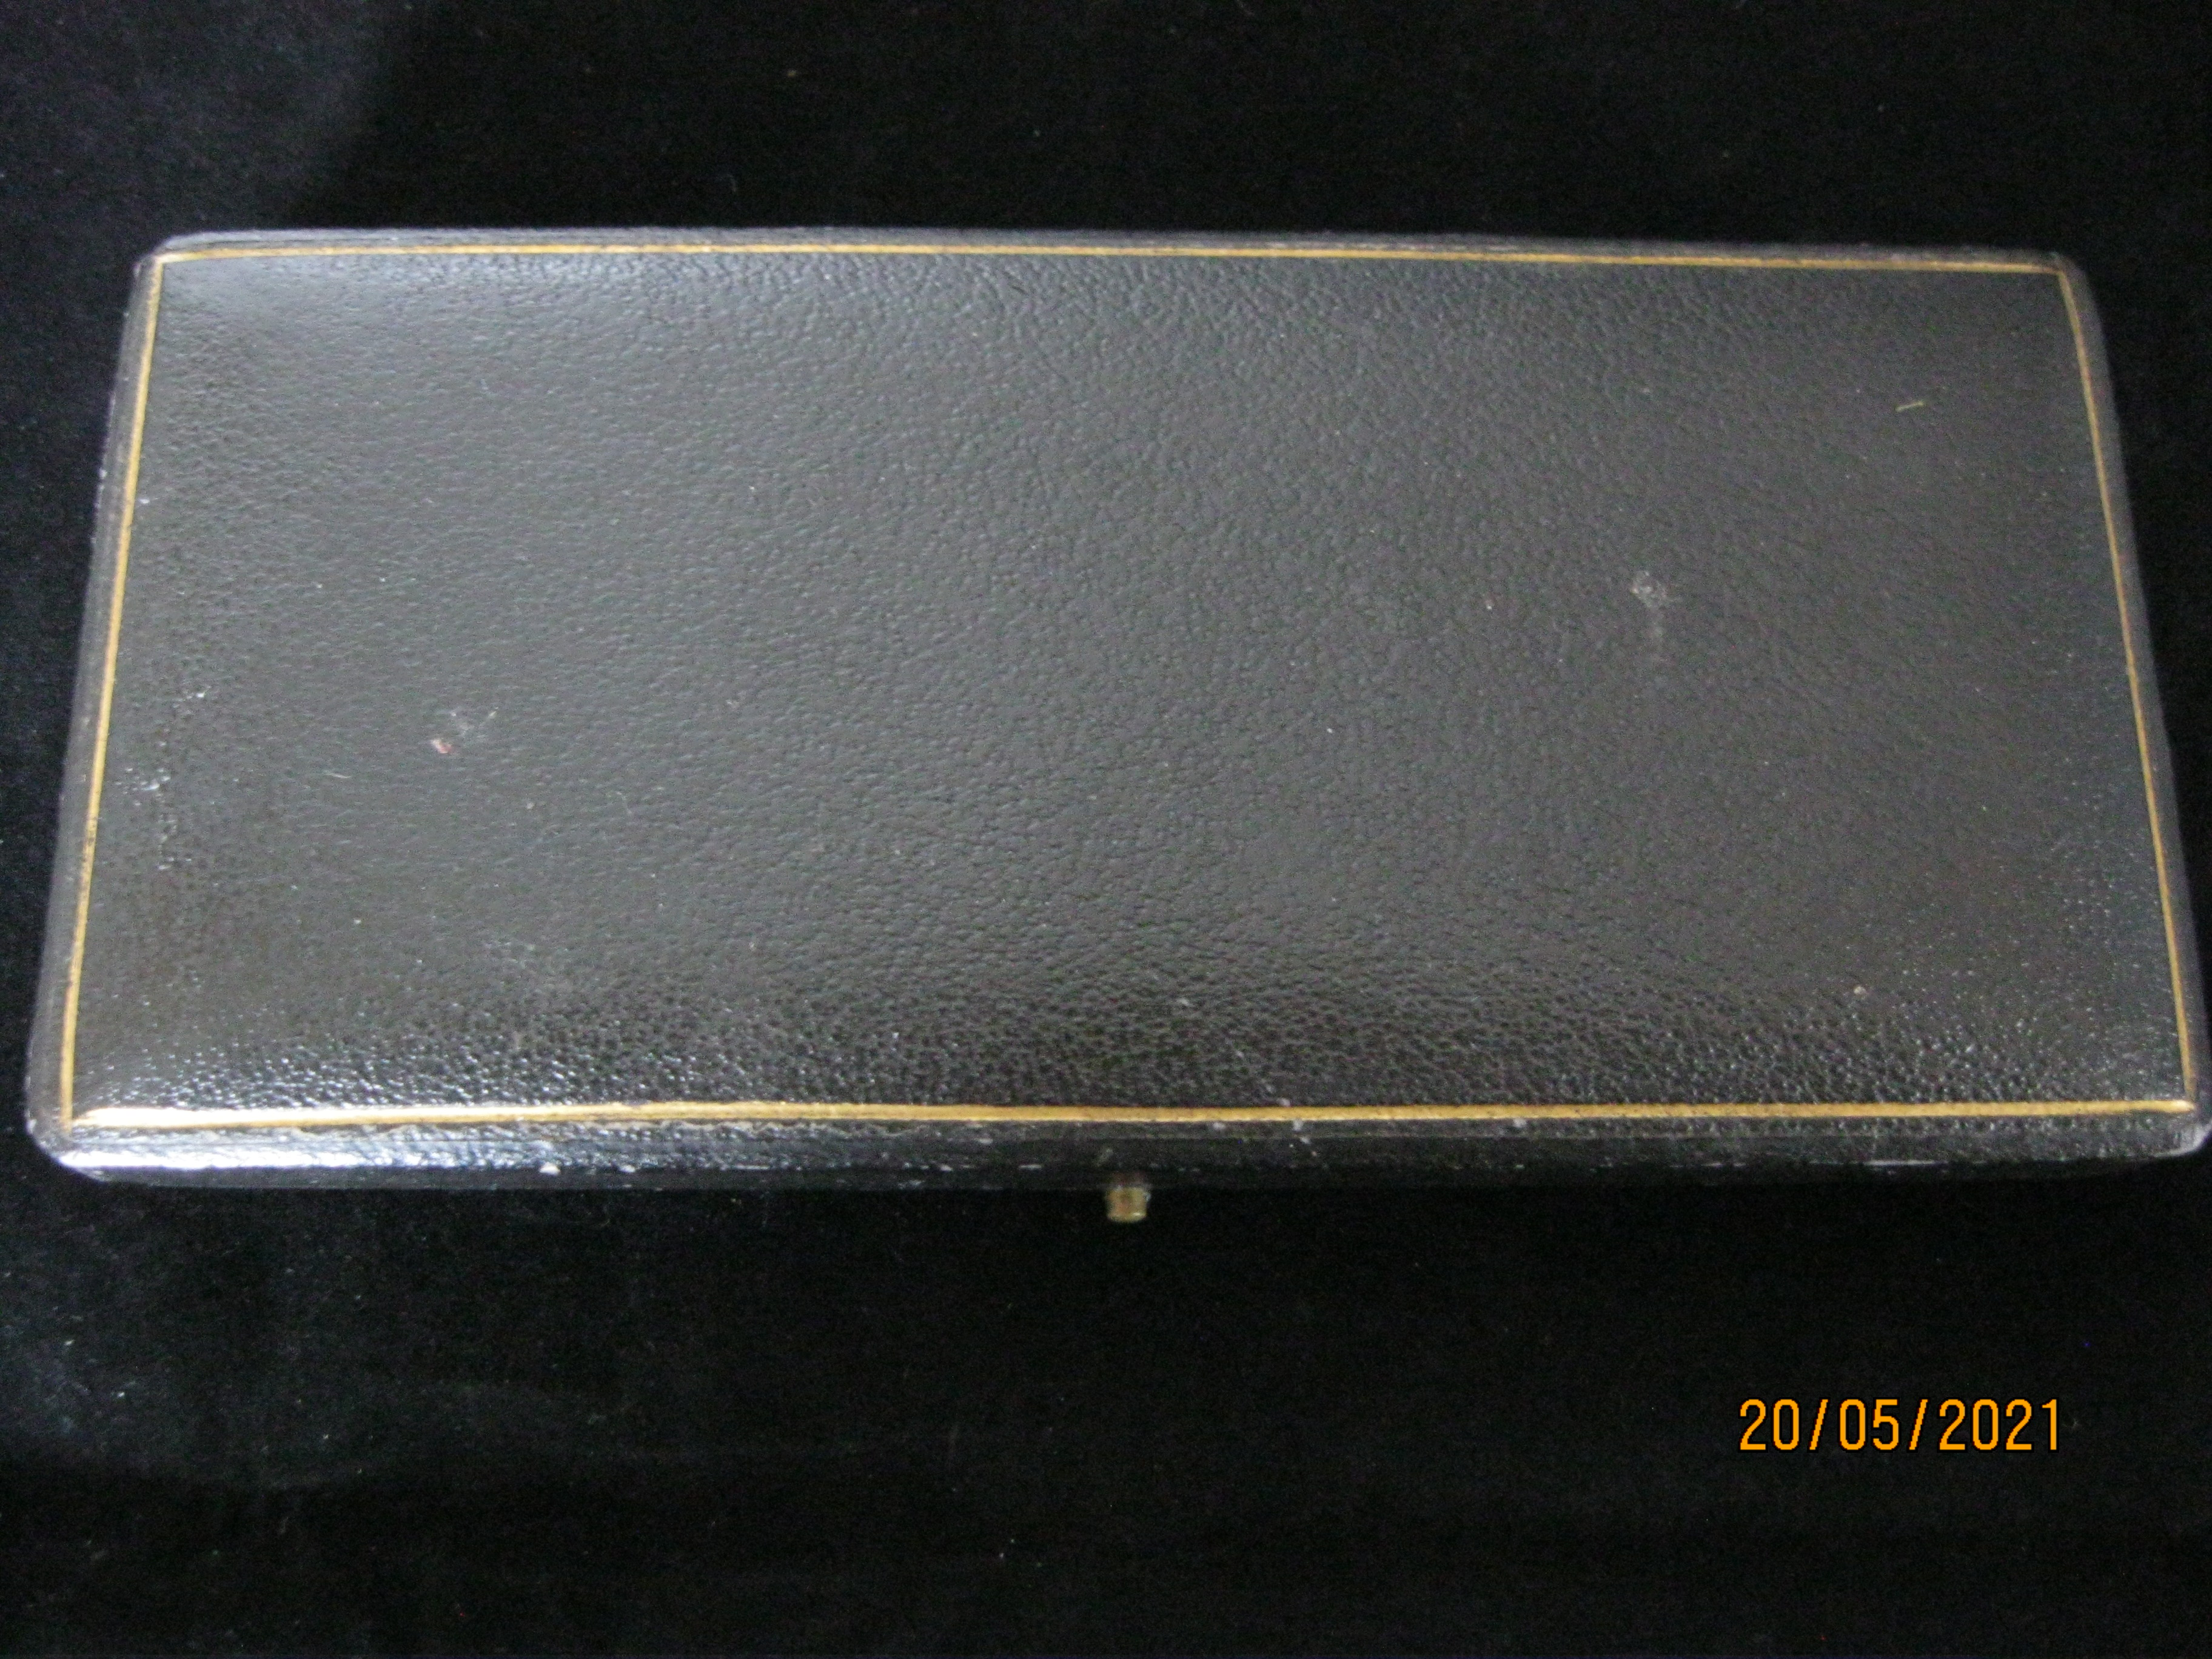 Pair Of Antique fruit Knifes With Mother Of Pearl Handles in Case - Image 9 of 9